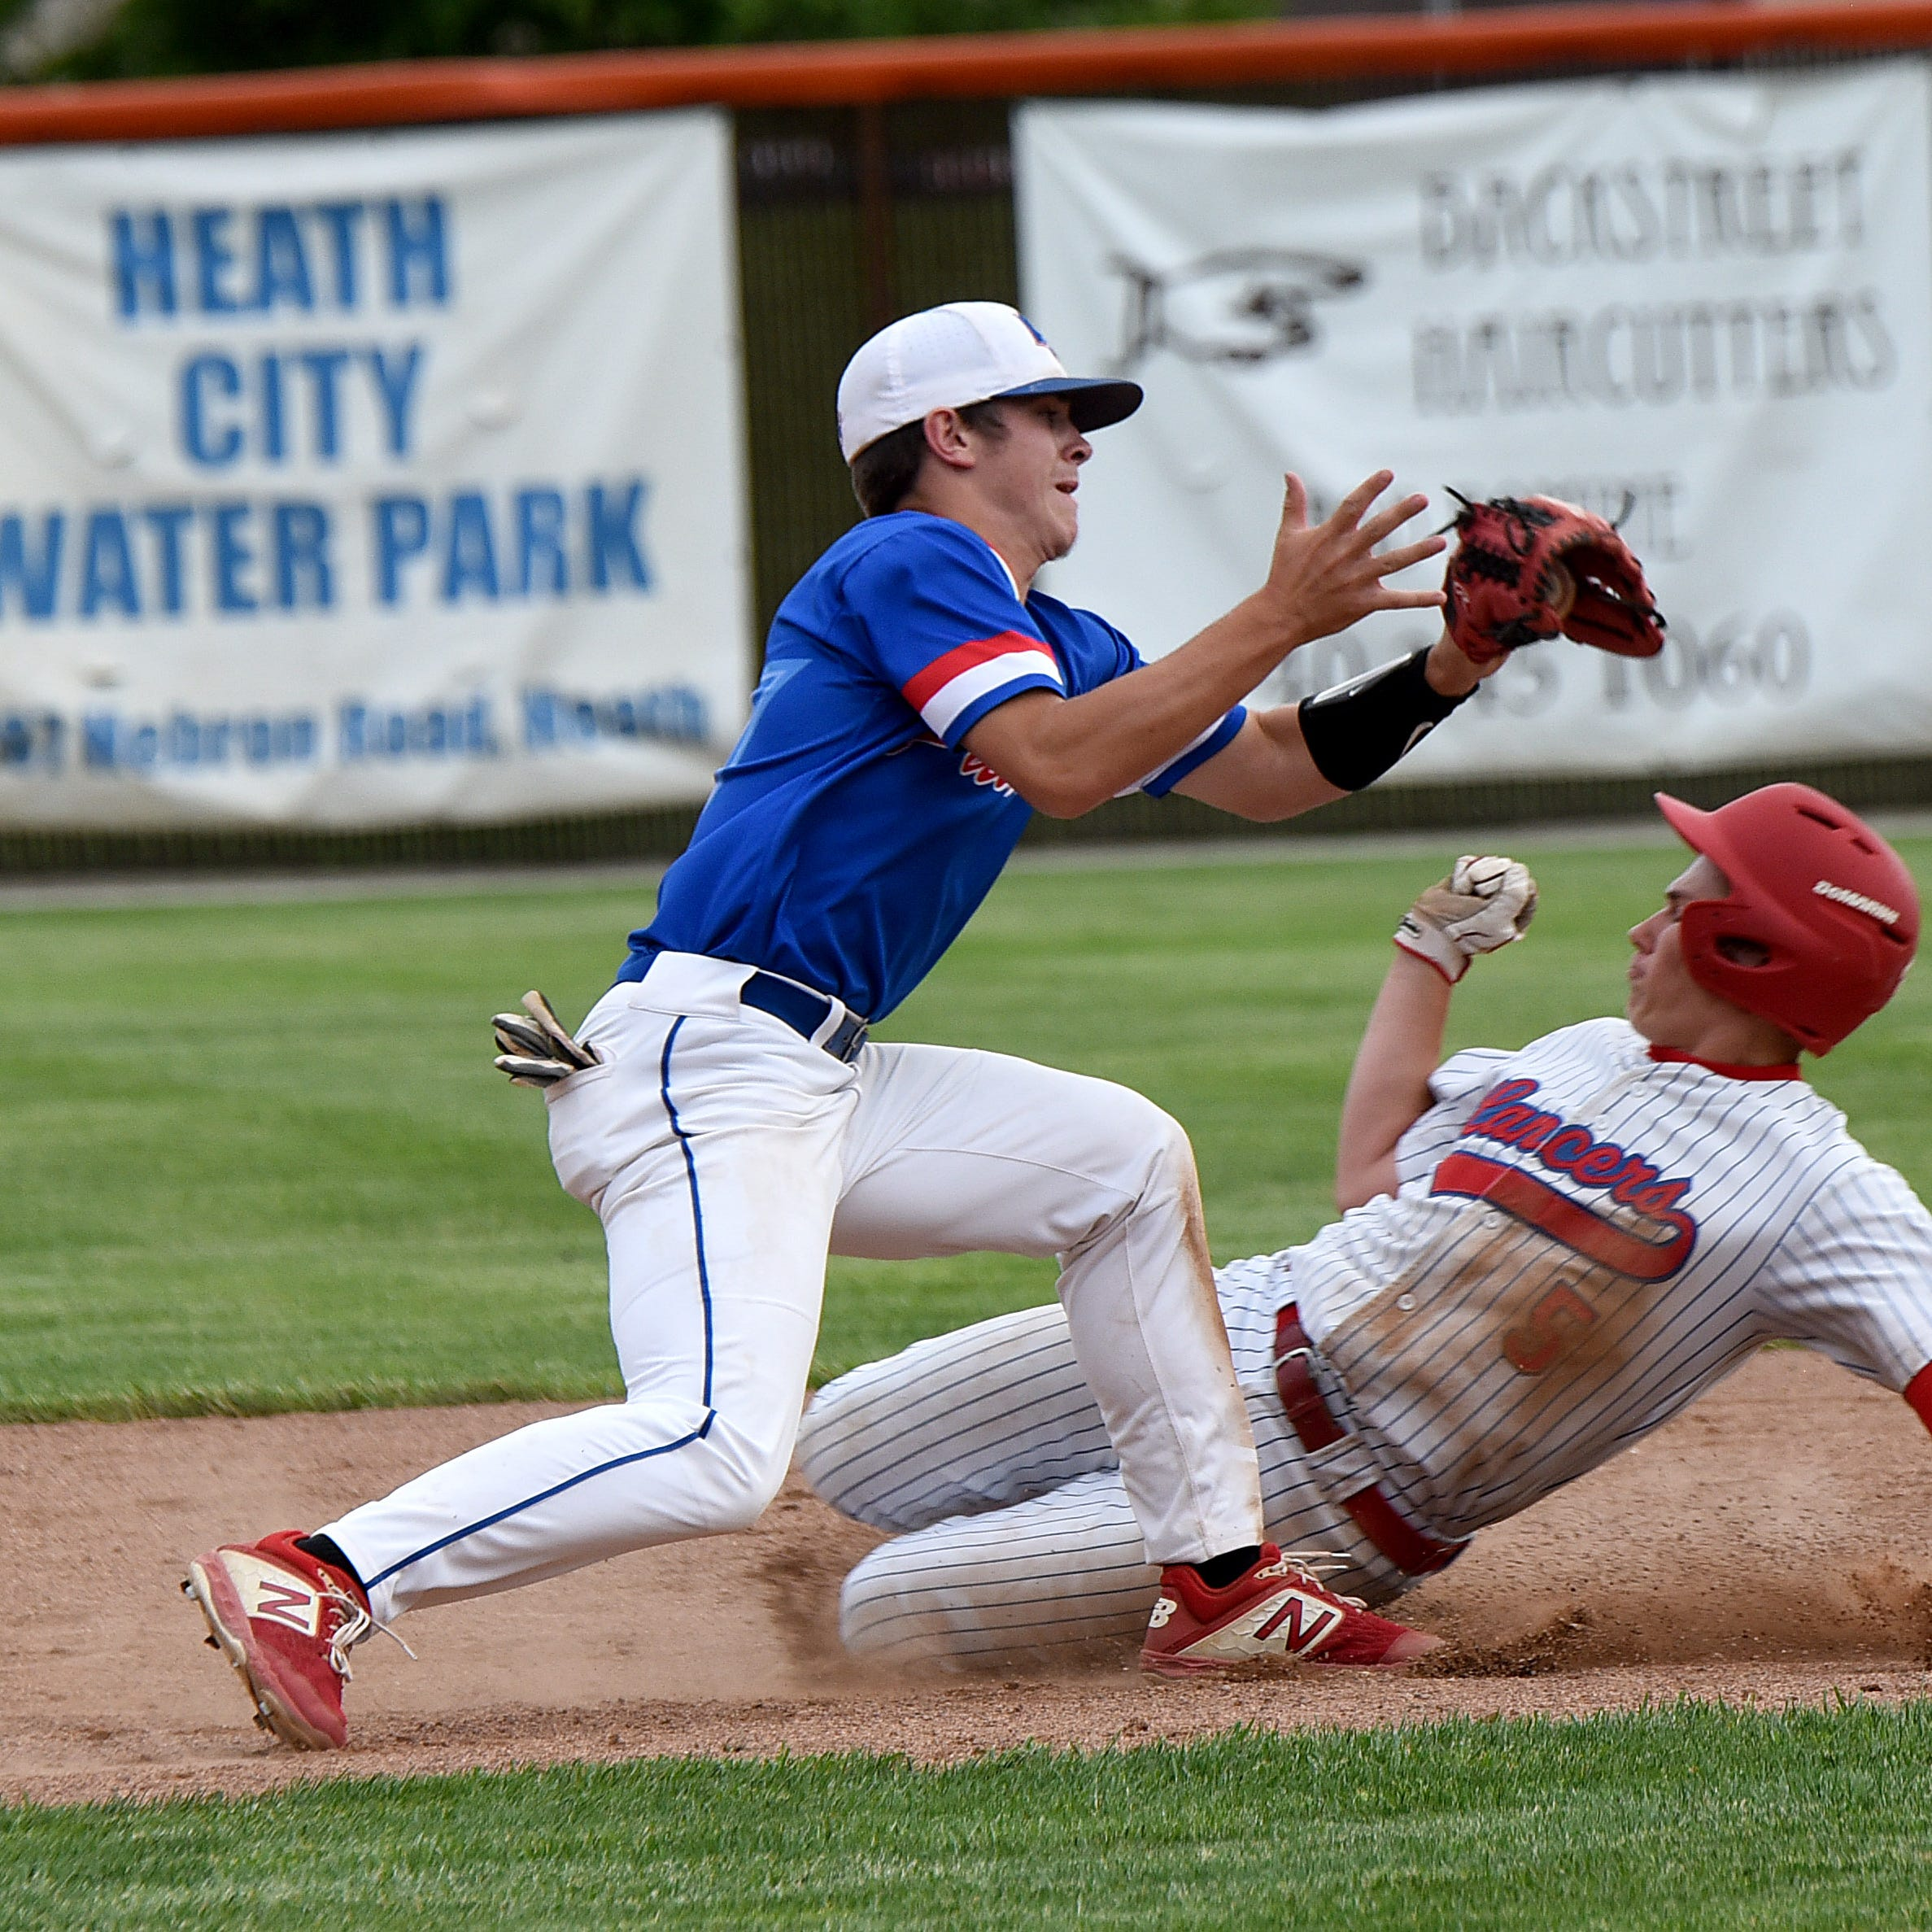 Just like in football, Valley baseball keeps its cool under pressure, ousts Lakewood